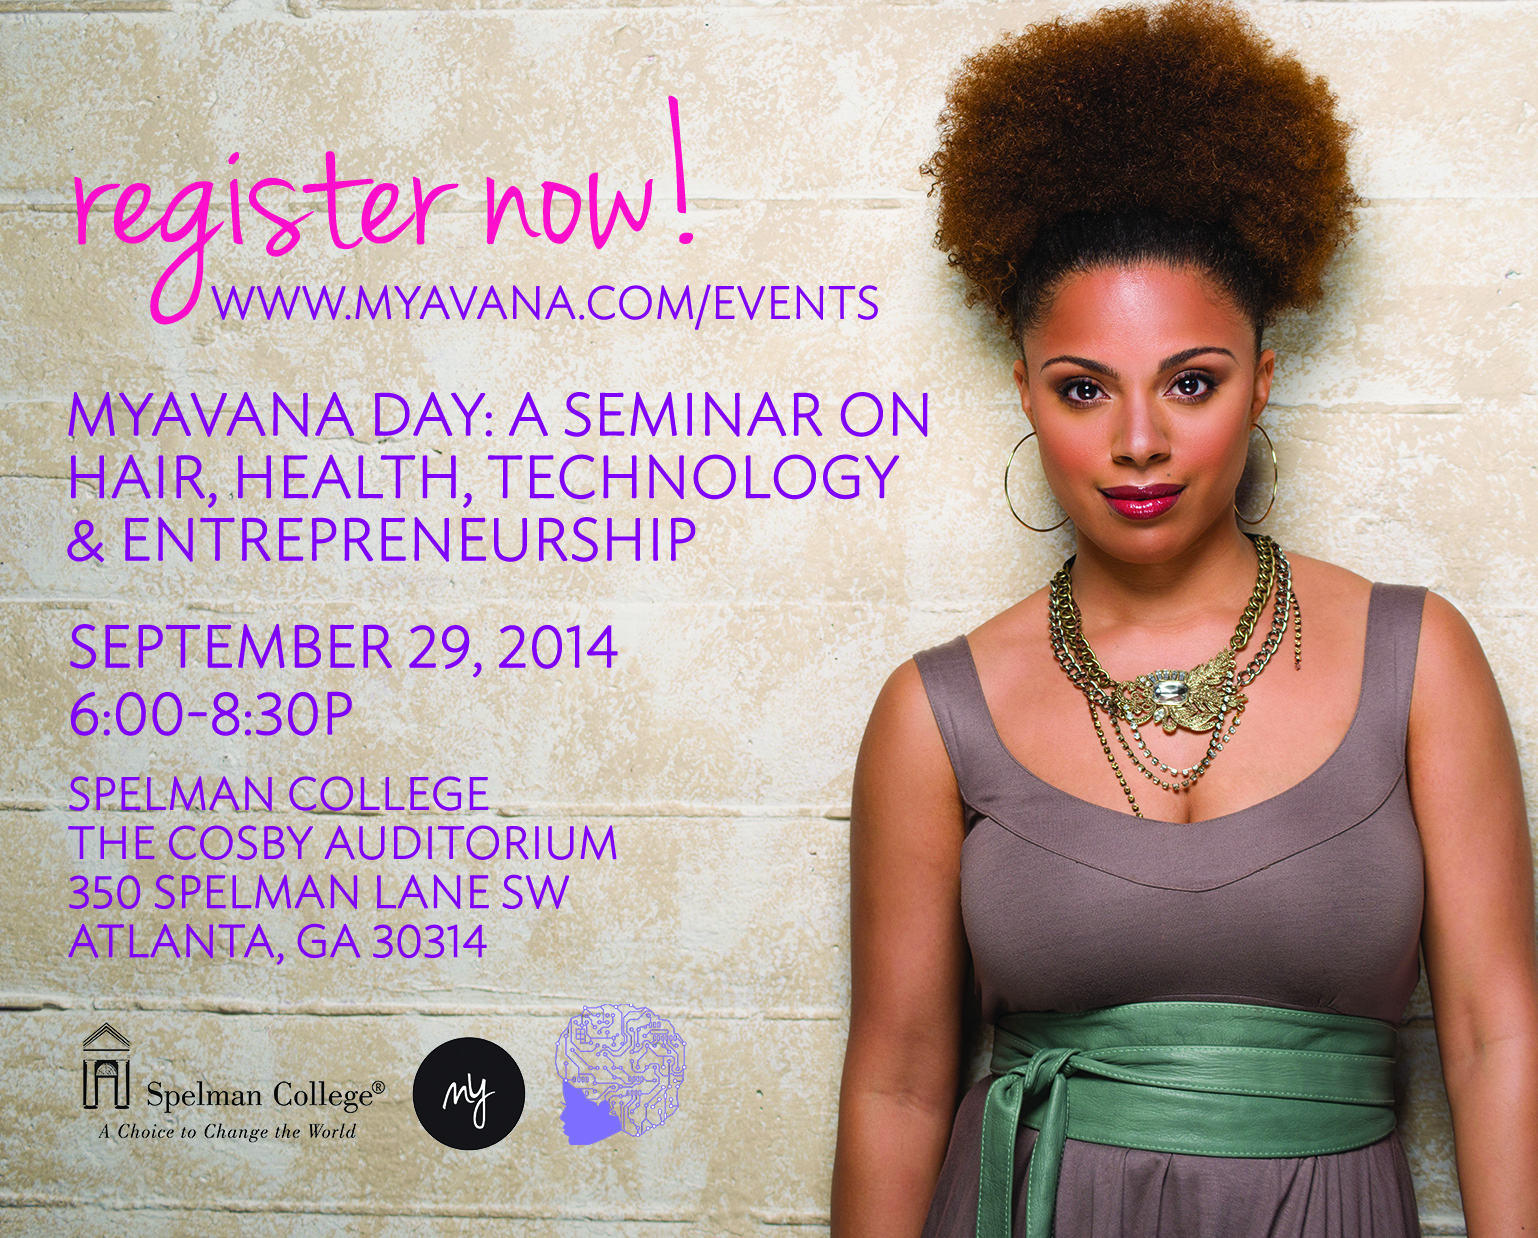 Myavana Day at Spelman College